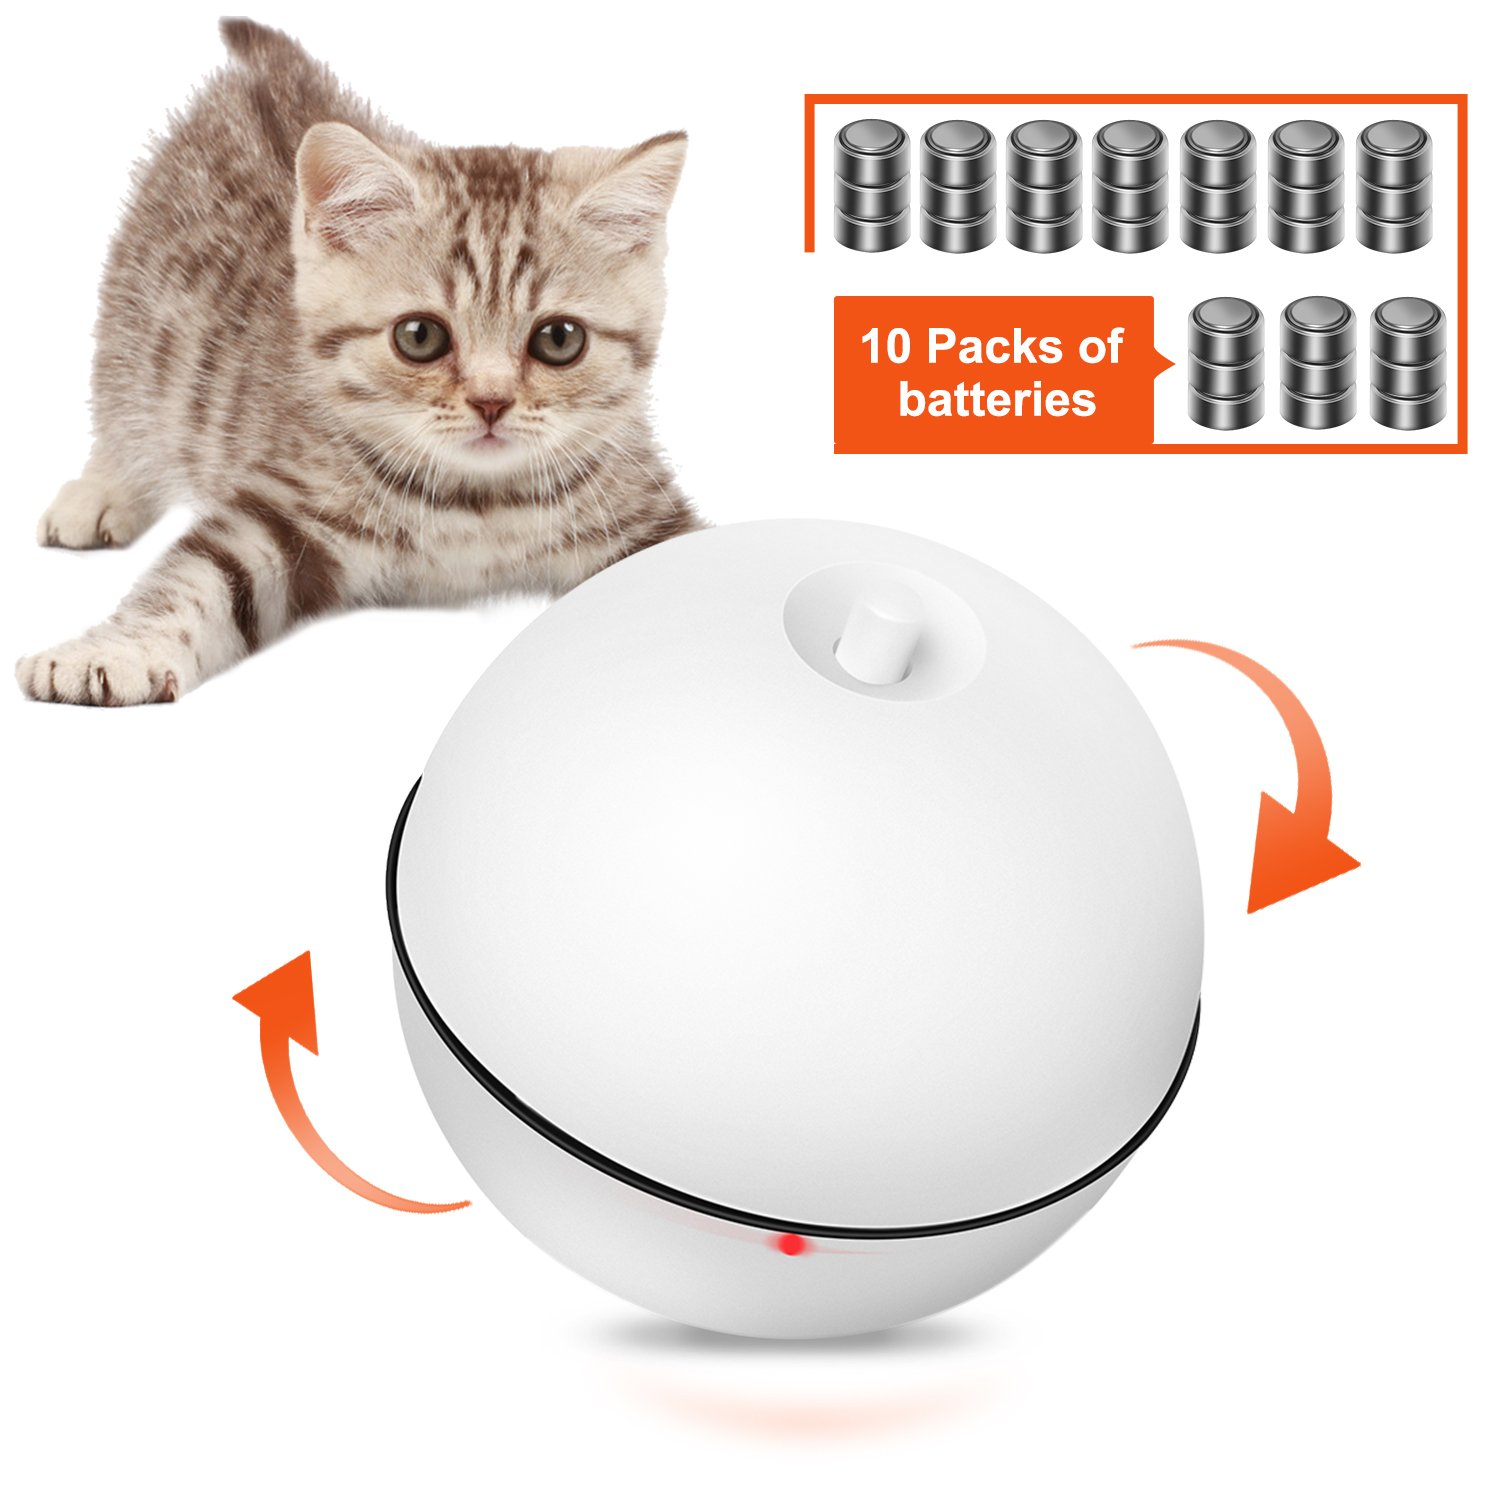 BANZI Cat Toy Ball Self Rolling Automatic Light Toy for Cat Dog and small Pet (30 Batteries Included)